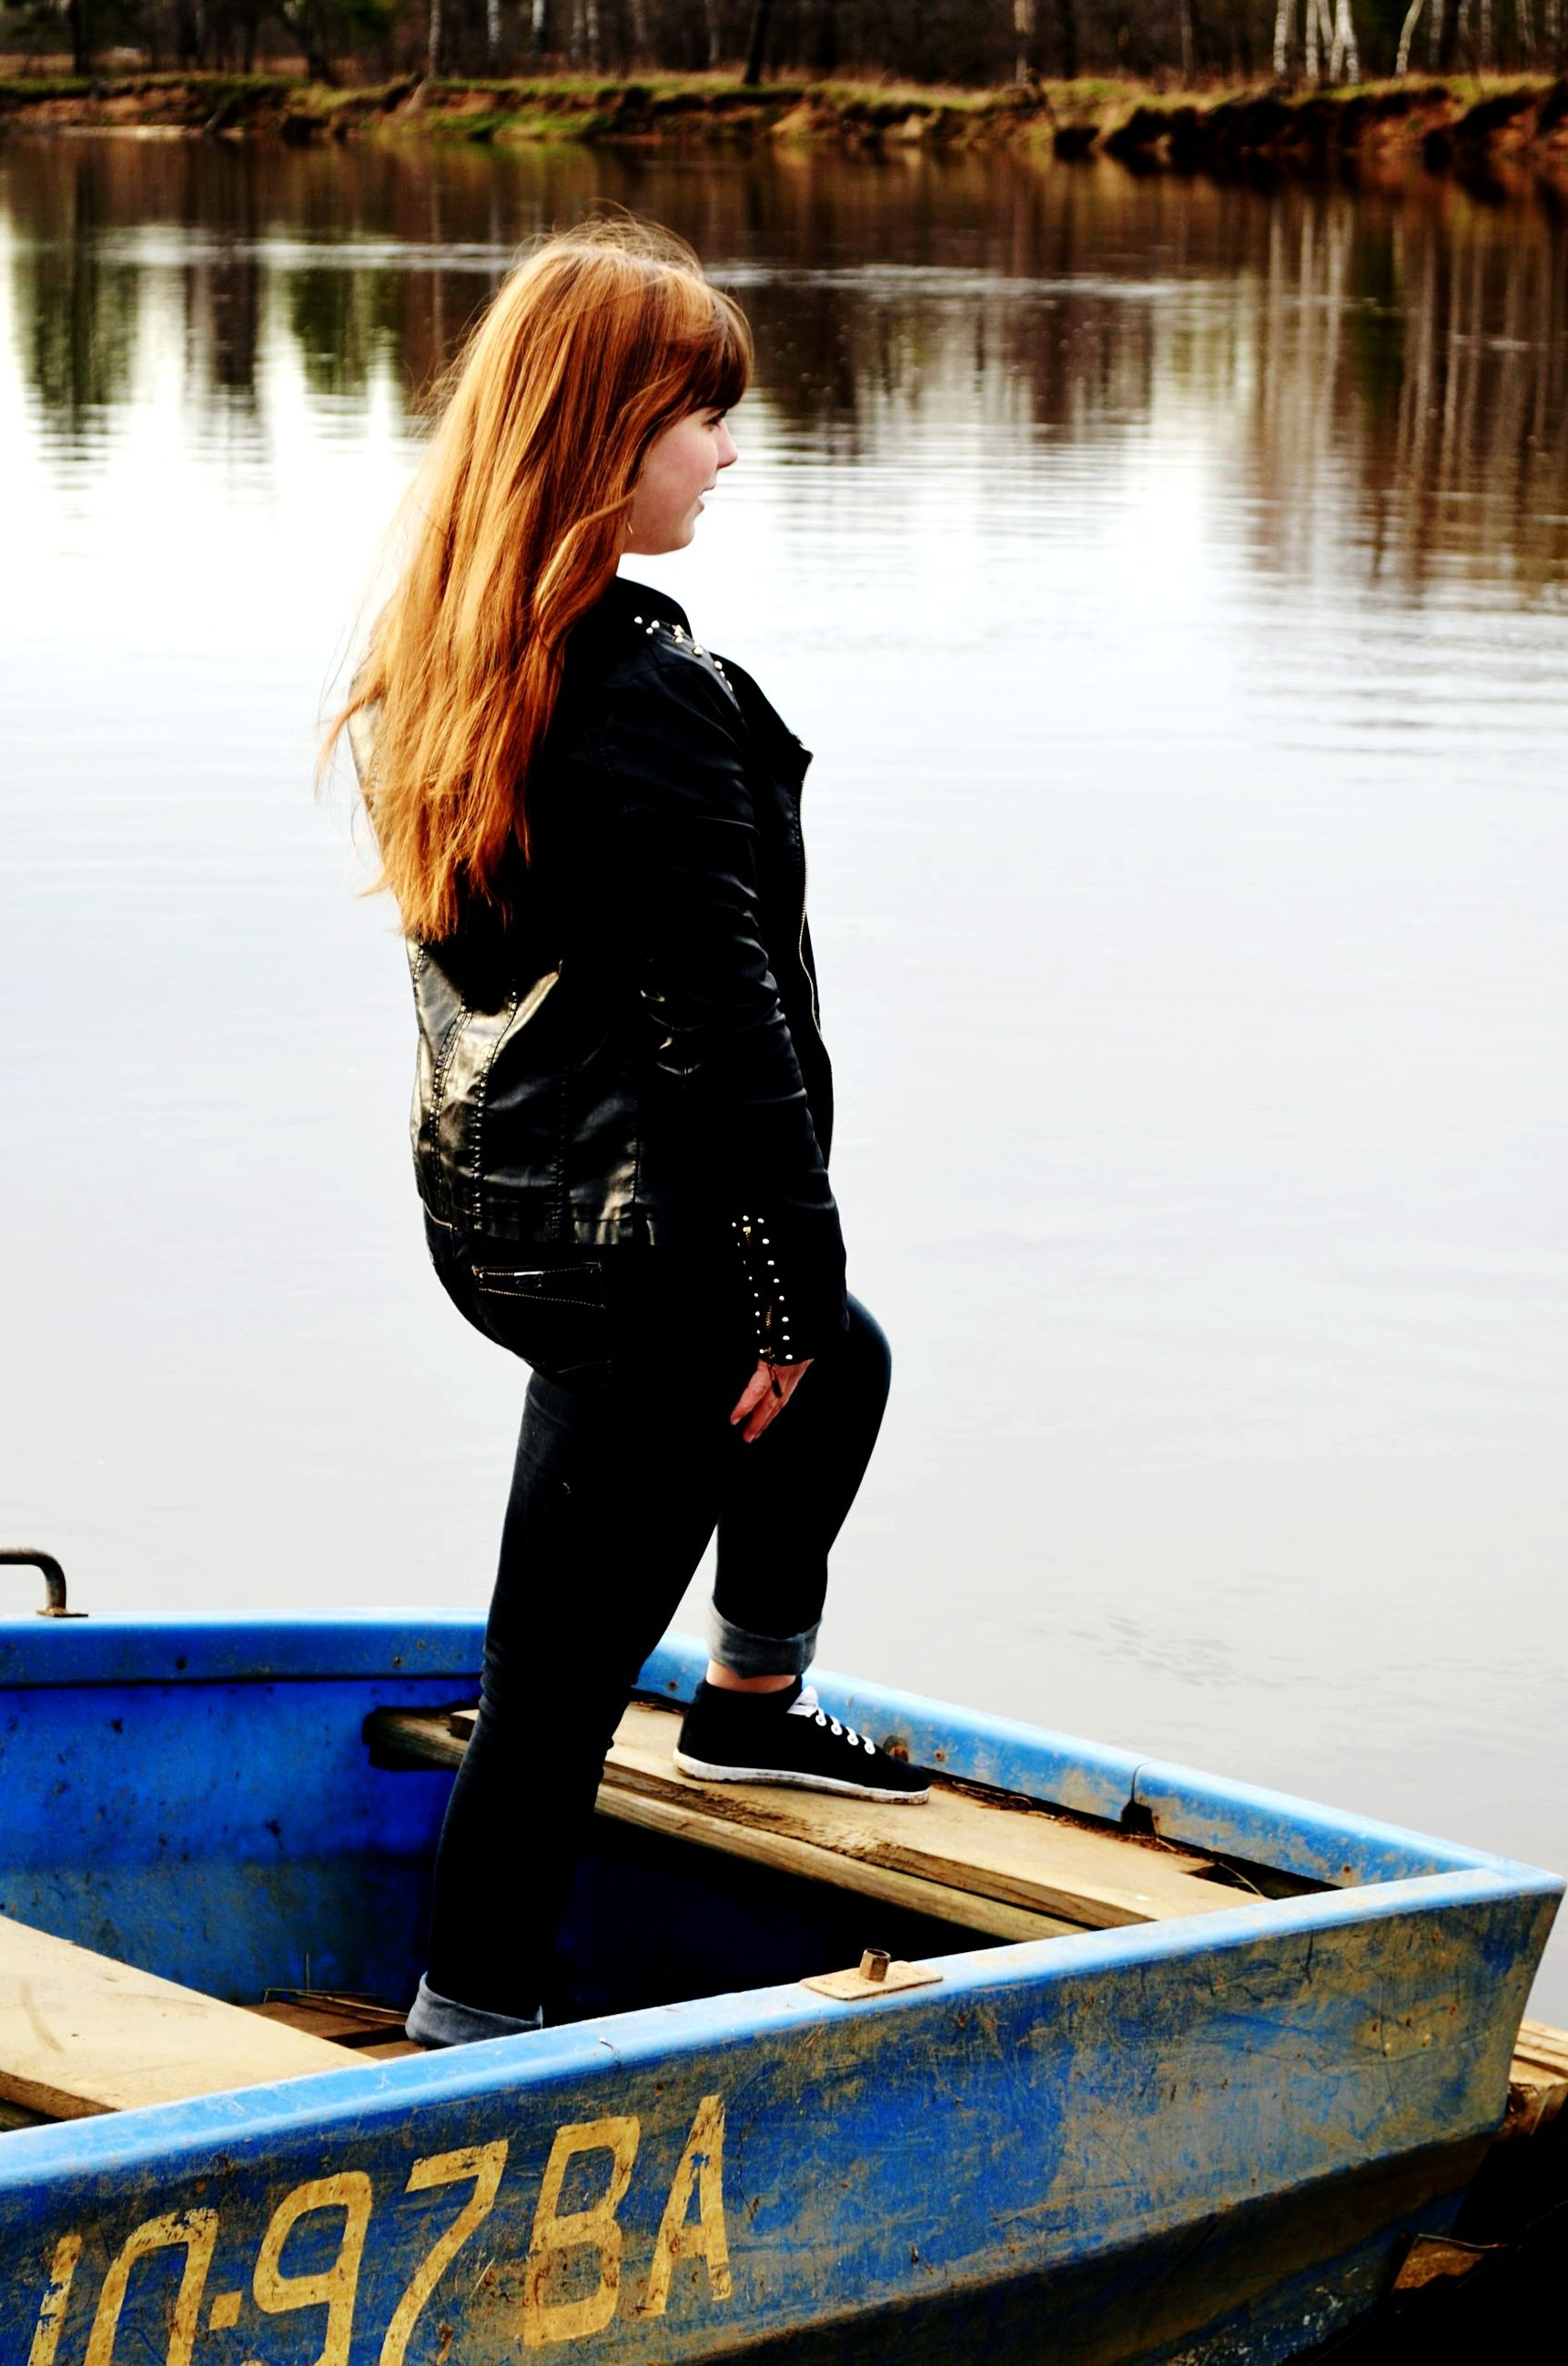 water, lifestyles, leisure activity, casual clothing, standing, full length, rear view, young adult, lake, long hair, three quarter length, young women, side view, river, person, sitting, relaxation